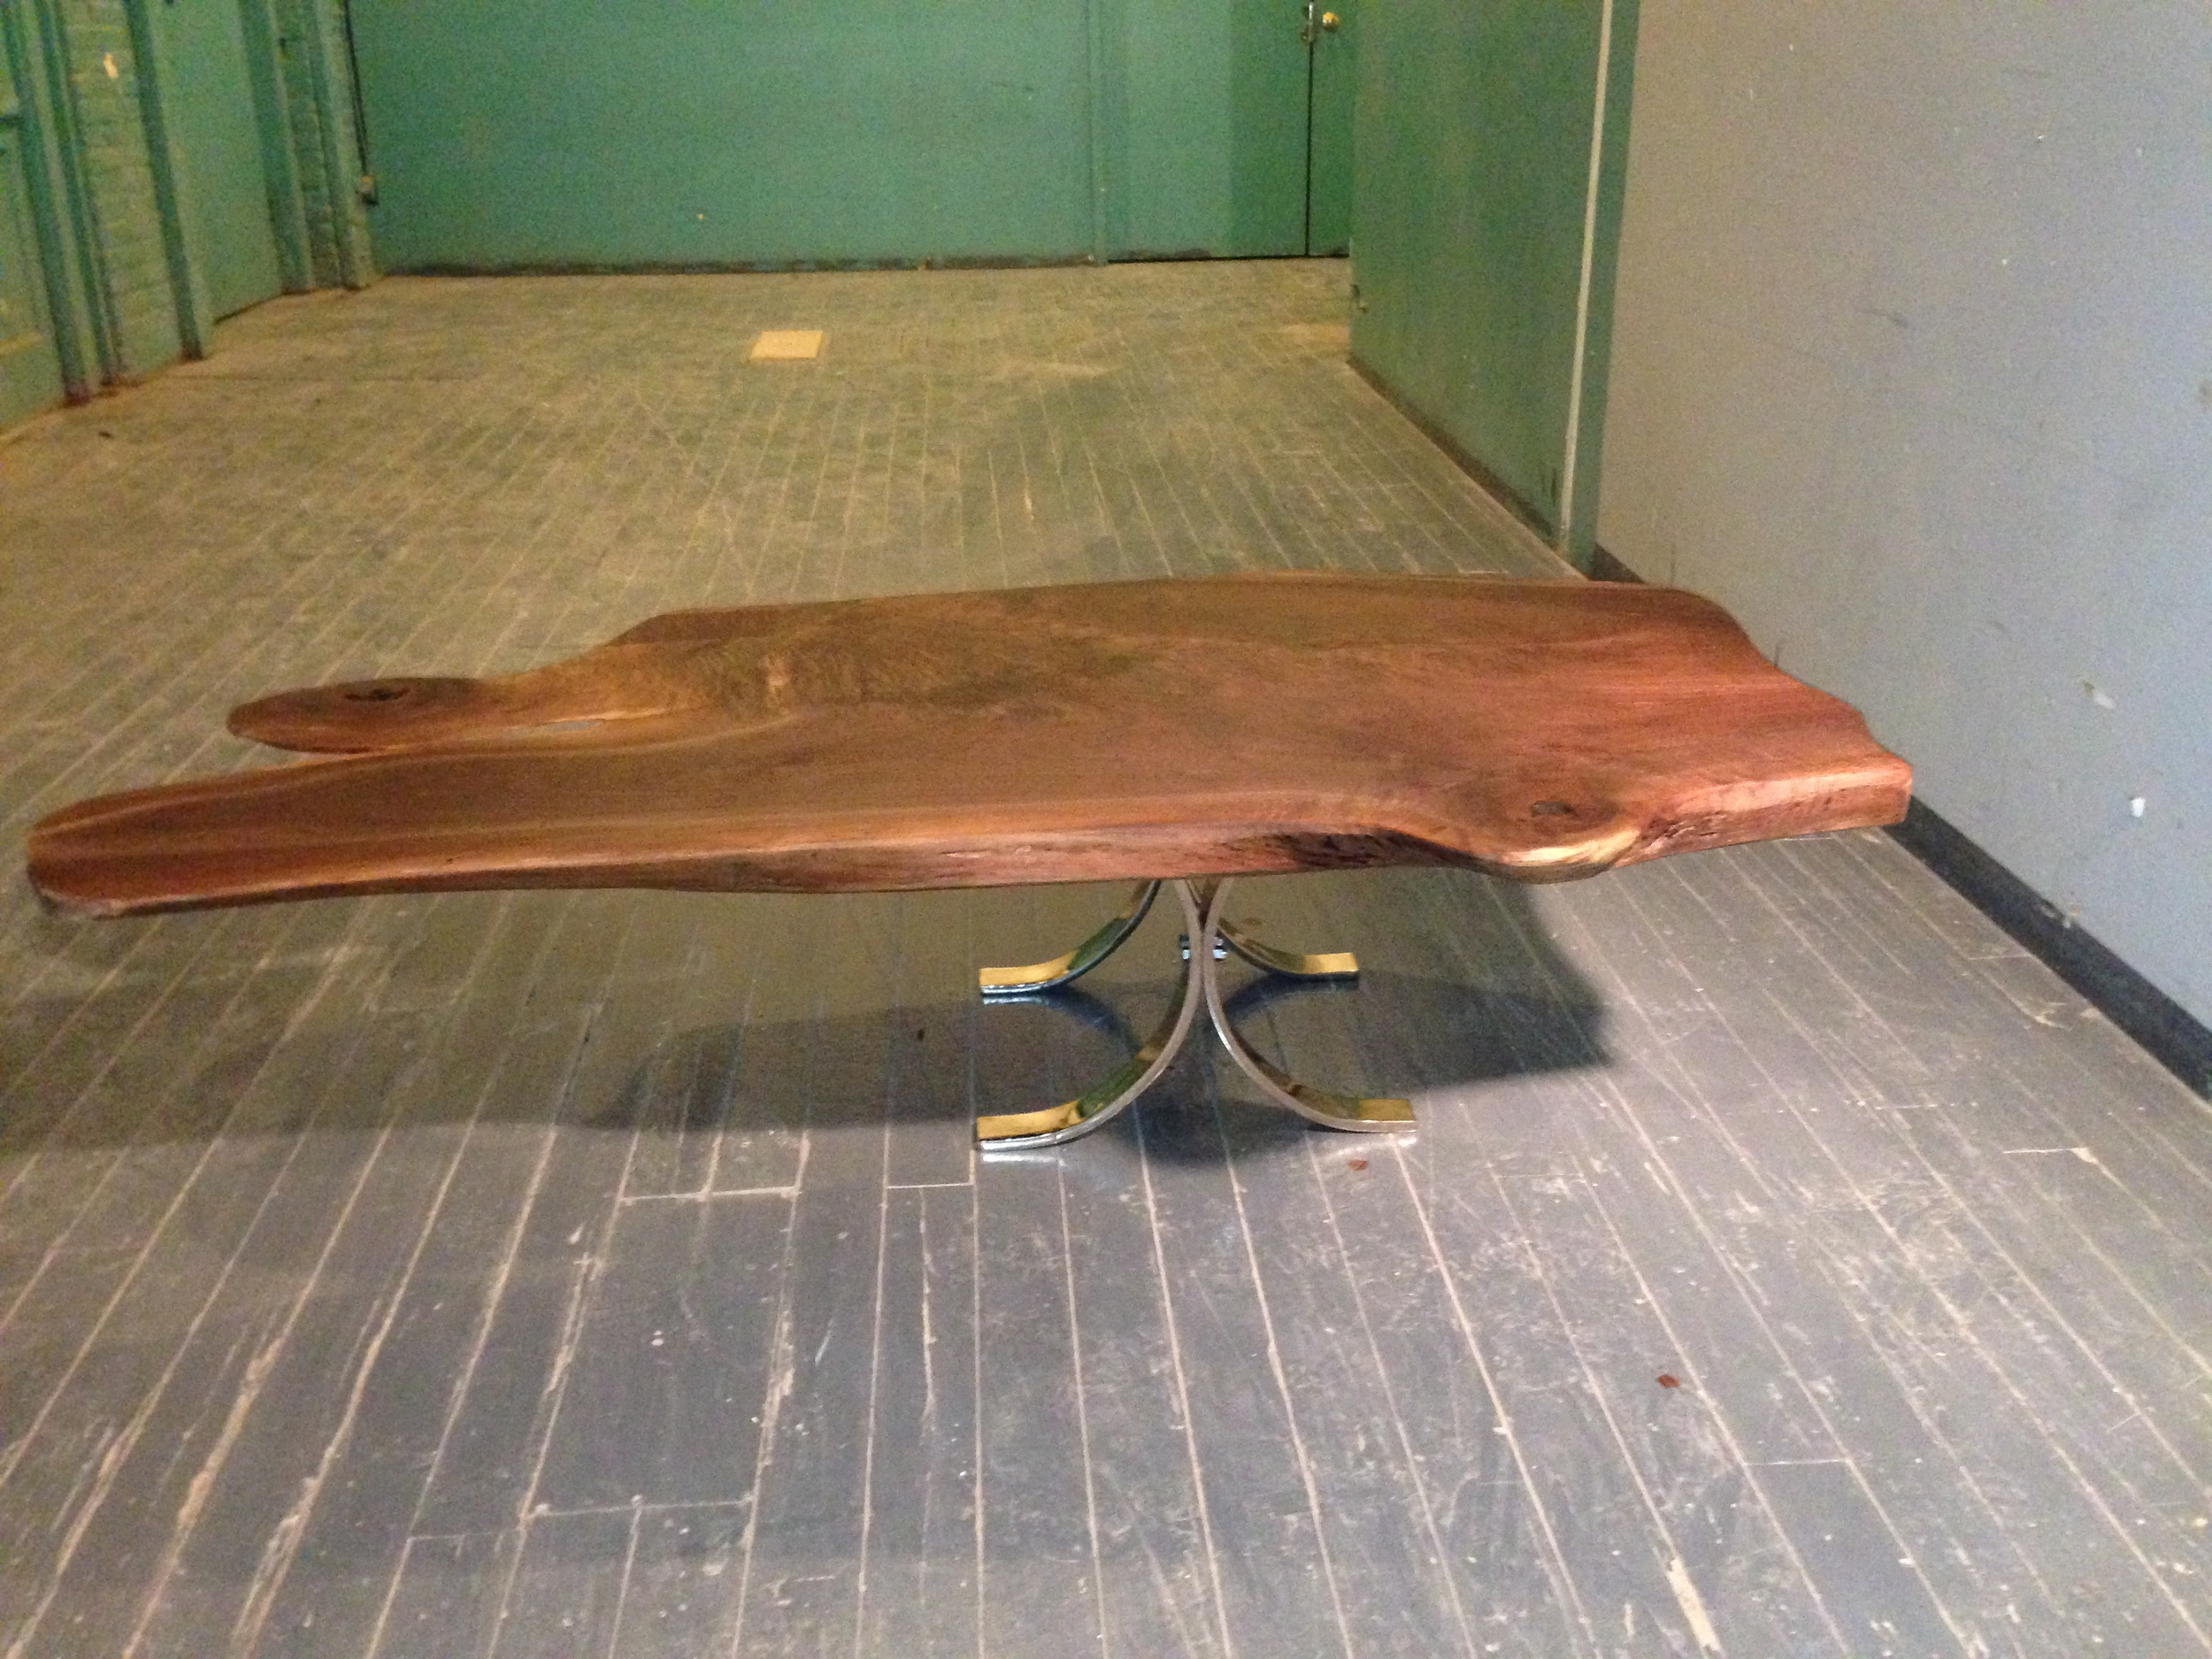 Walnut Coffee Table with Nickel-Plated Legs